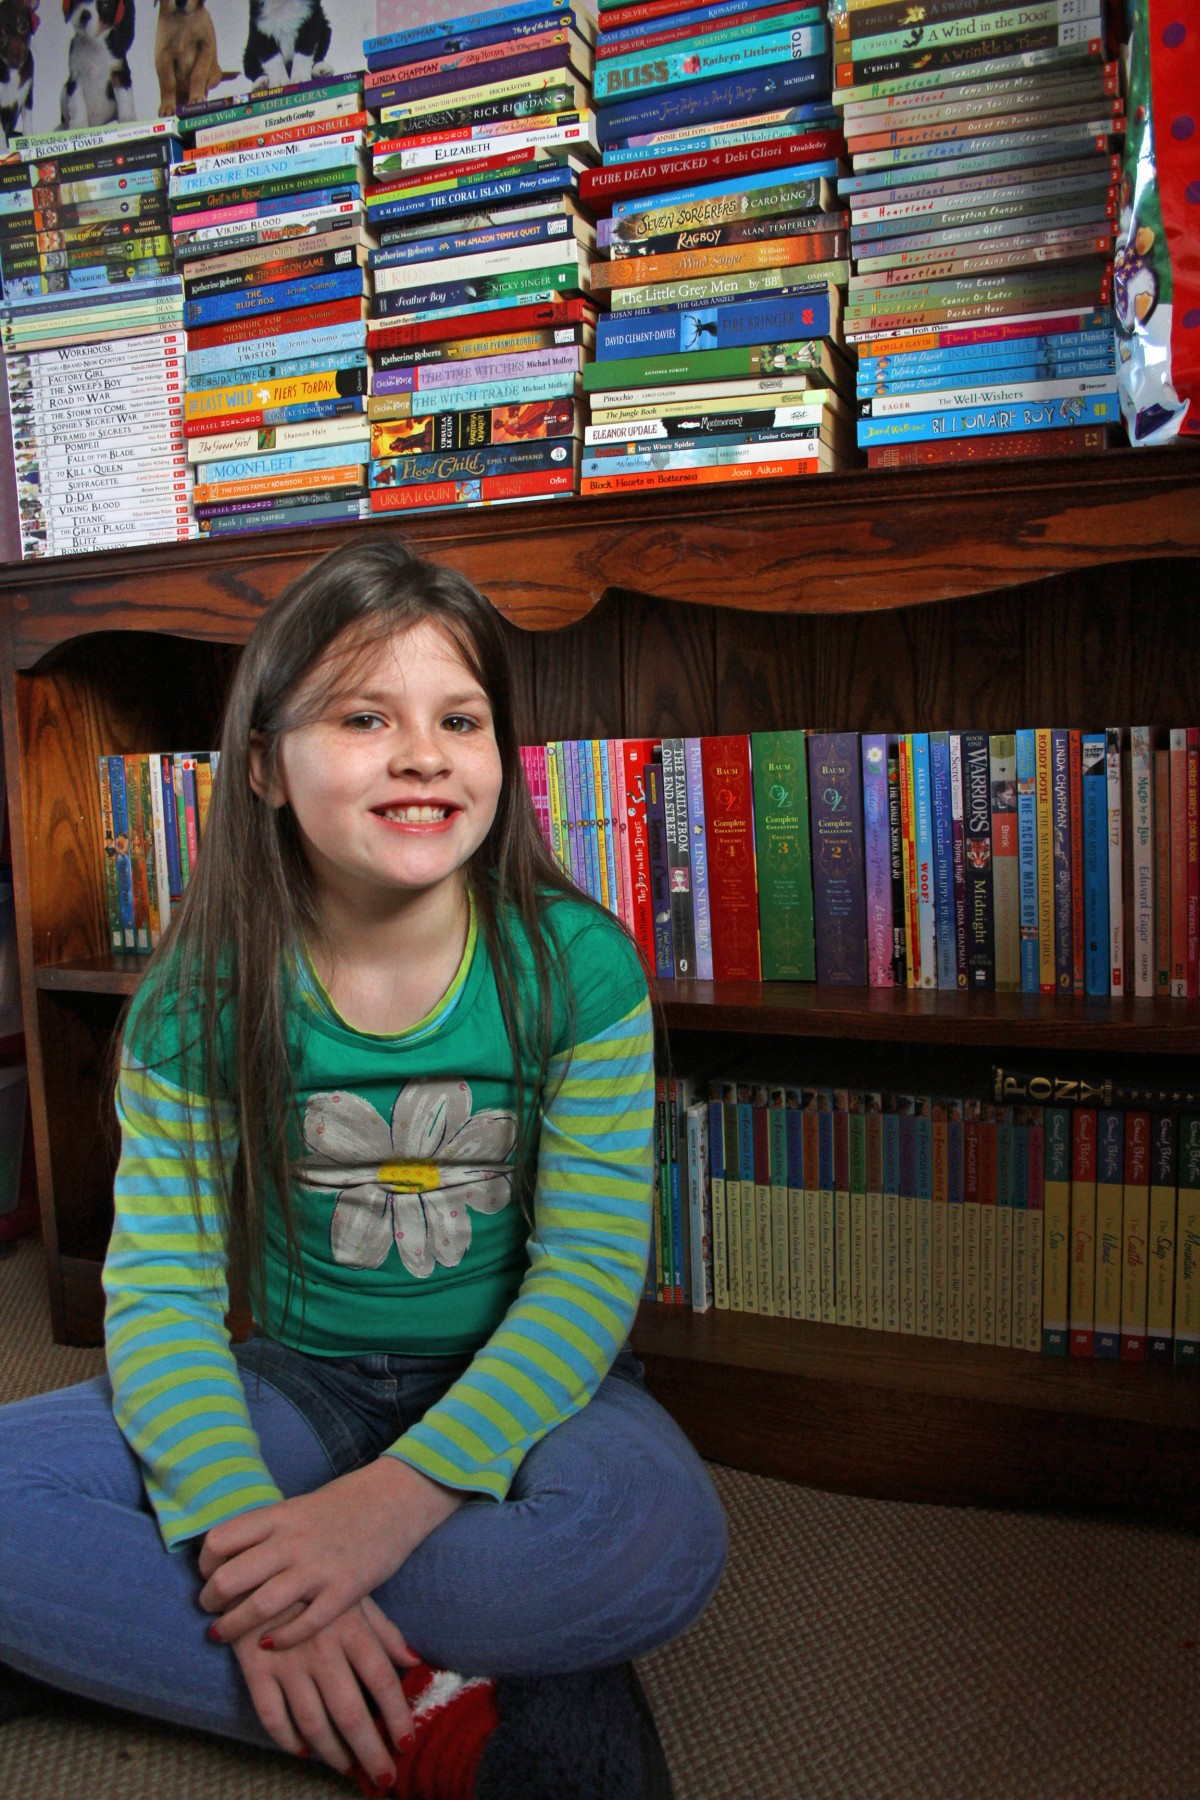 Nine-year-old Faith's 'mind blowing' book challenge